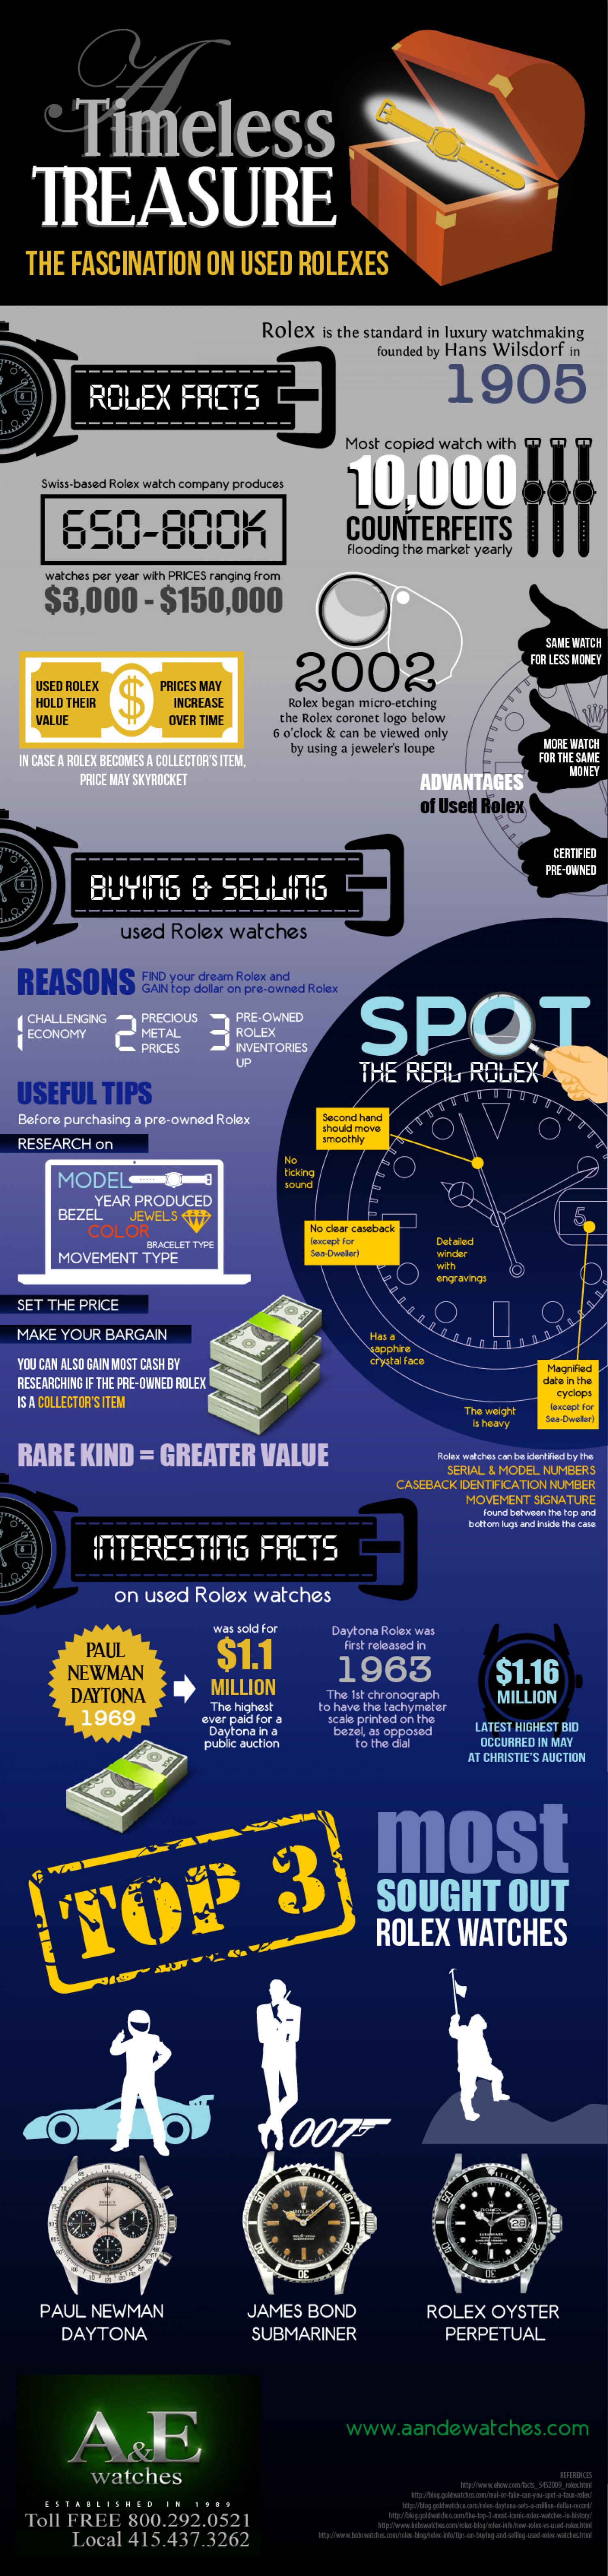 A Timeless Treasure: The Fascination on Used Rolexes Infographic